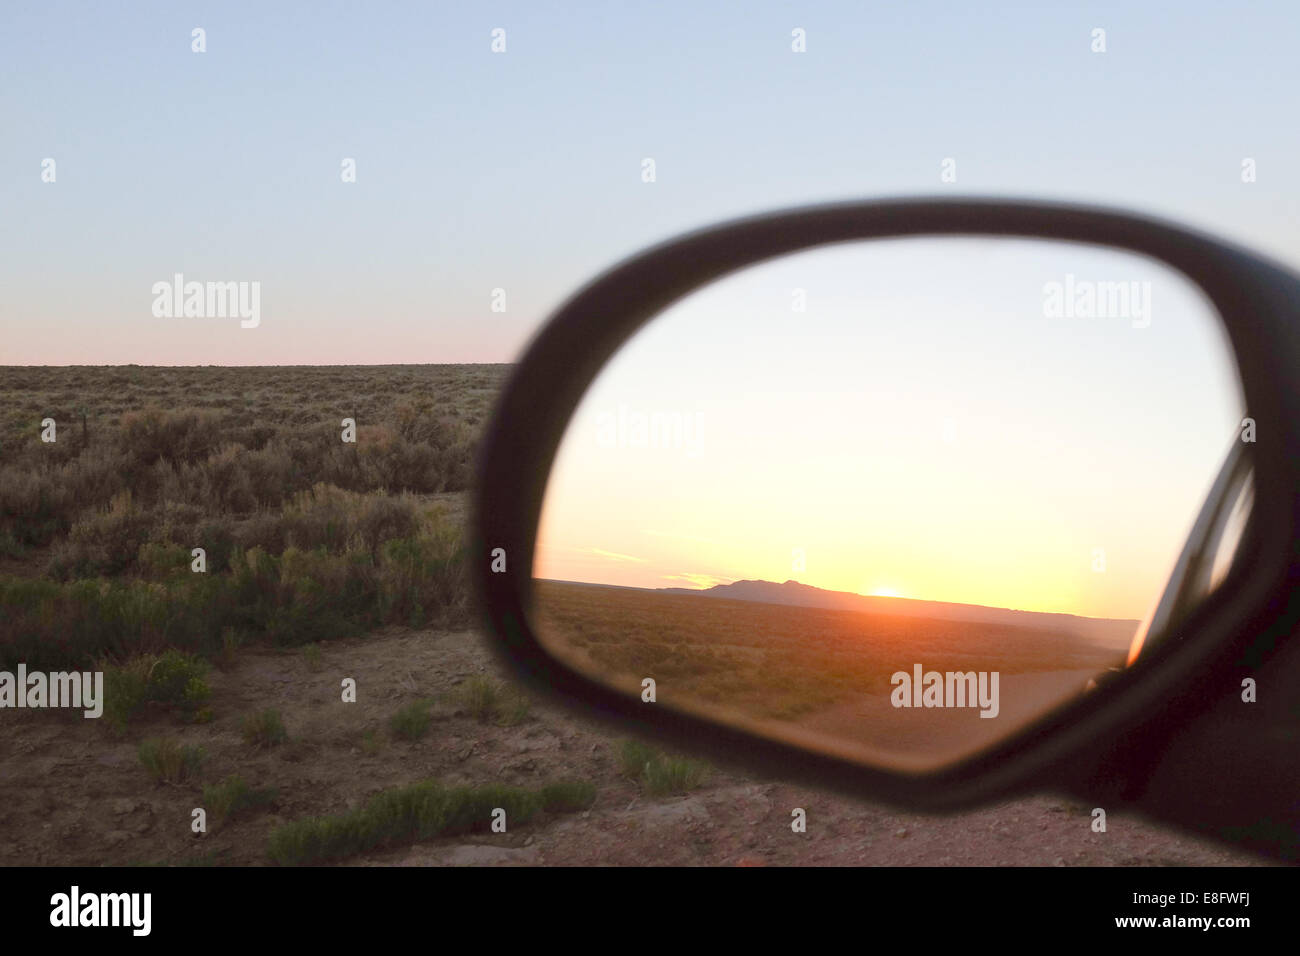 USA, Wyoming, Sunset reflecting in side mirror - Stock Image